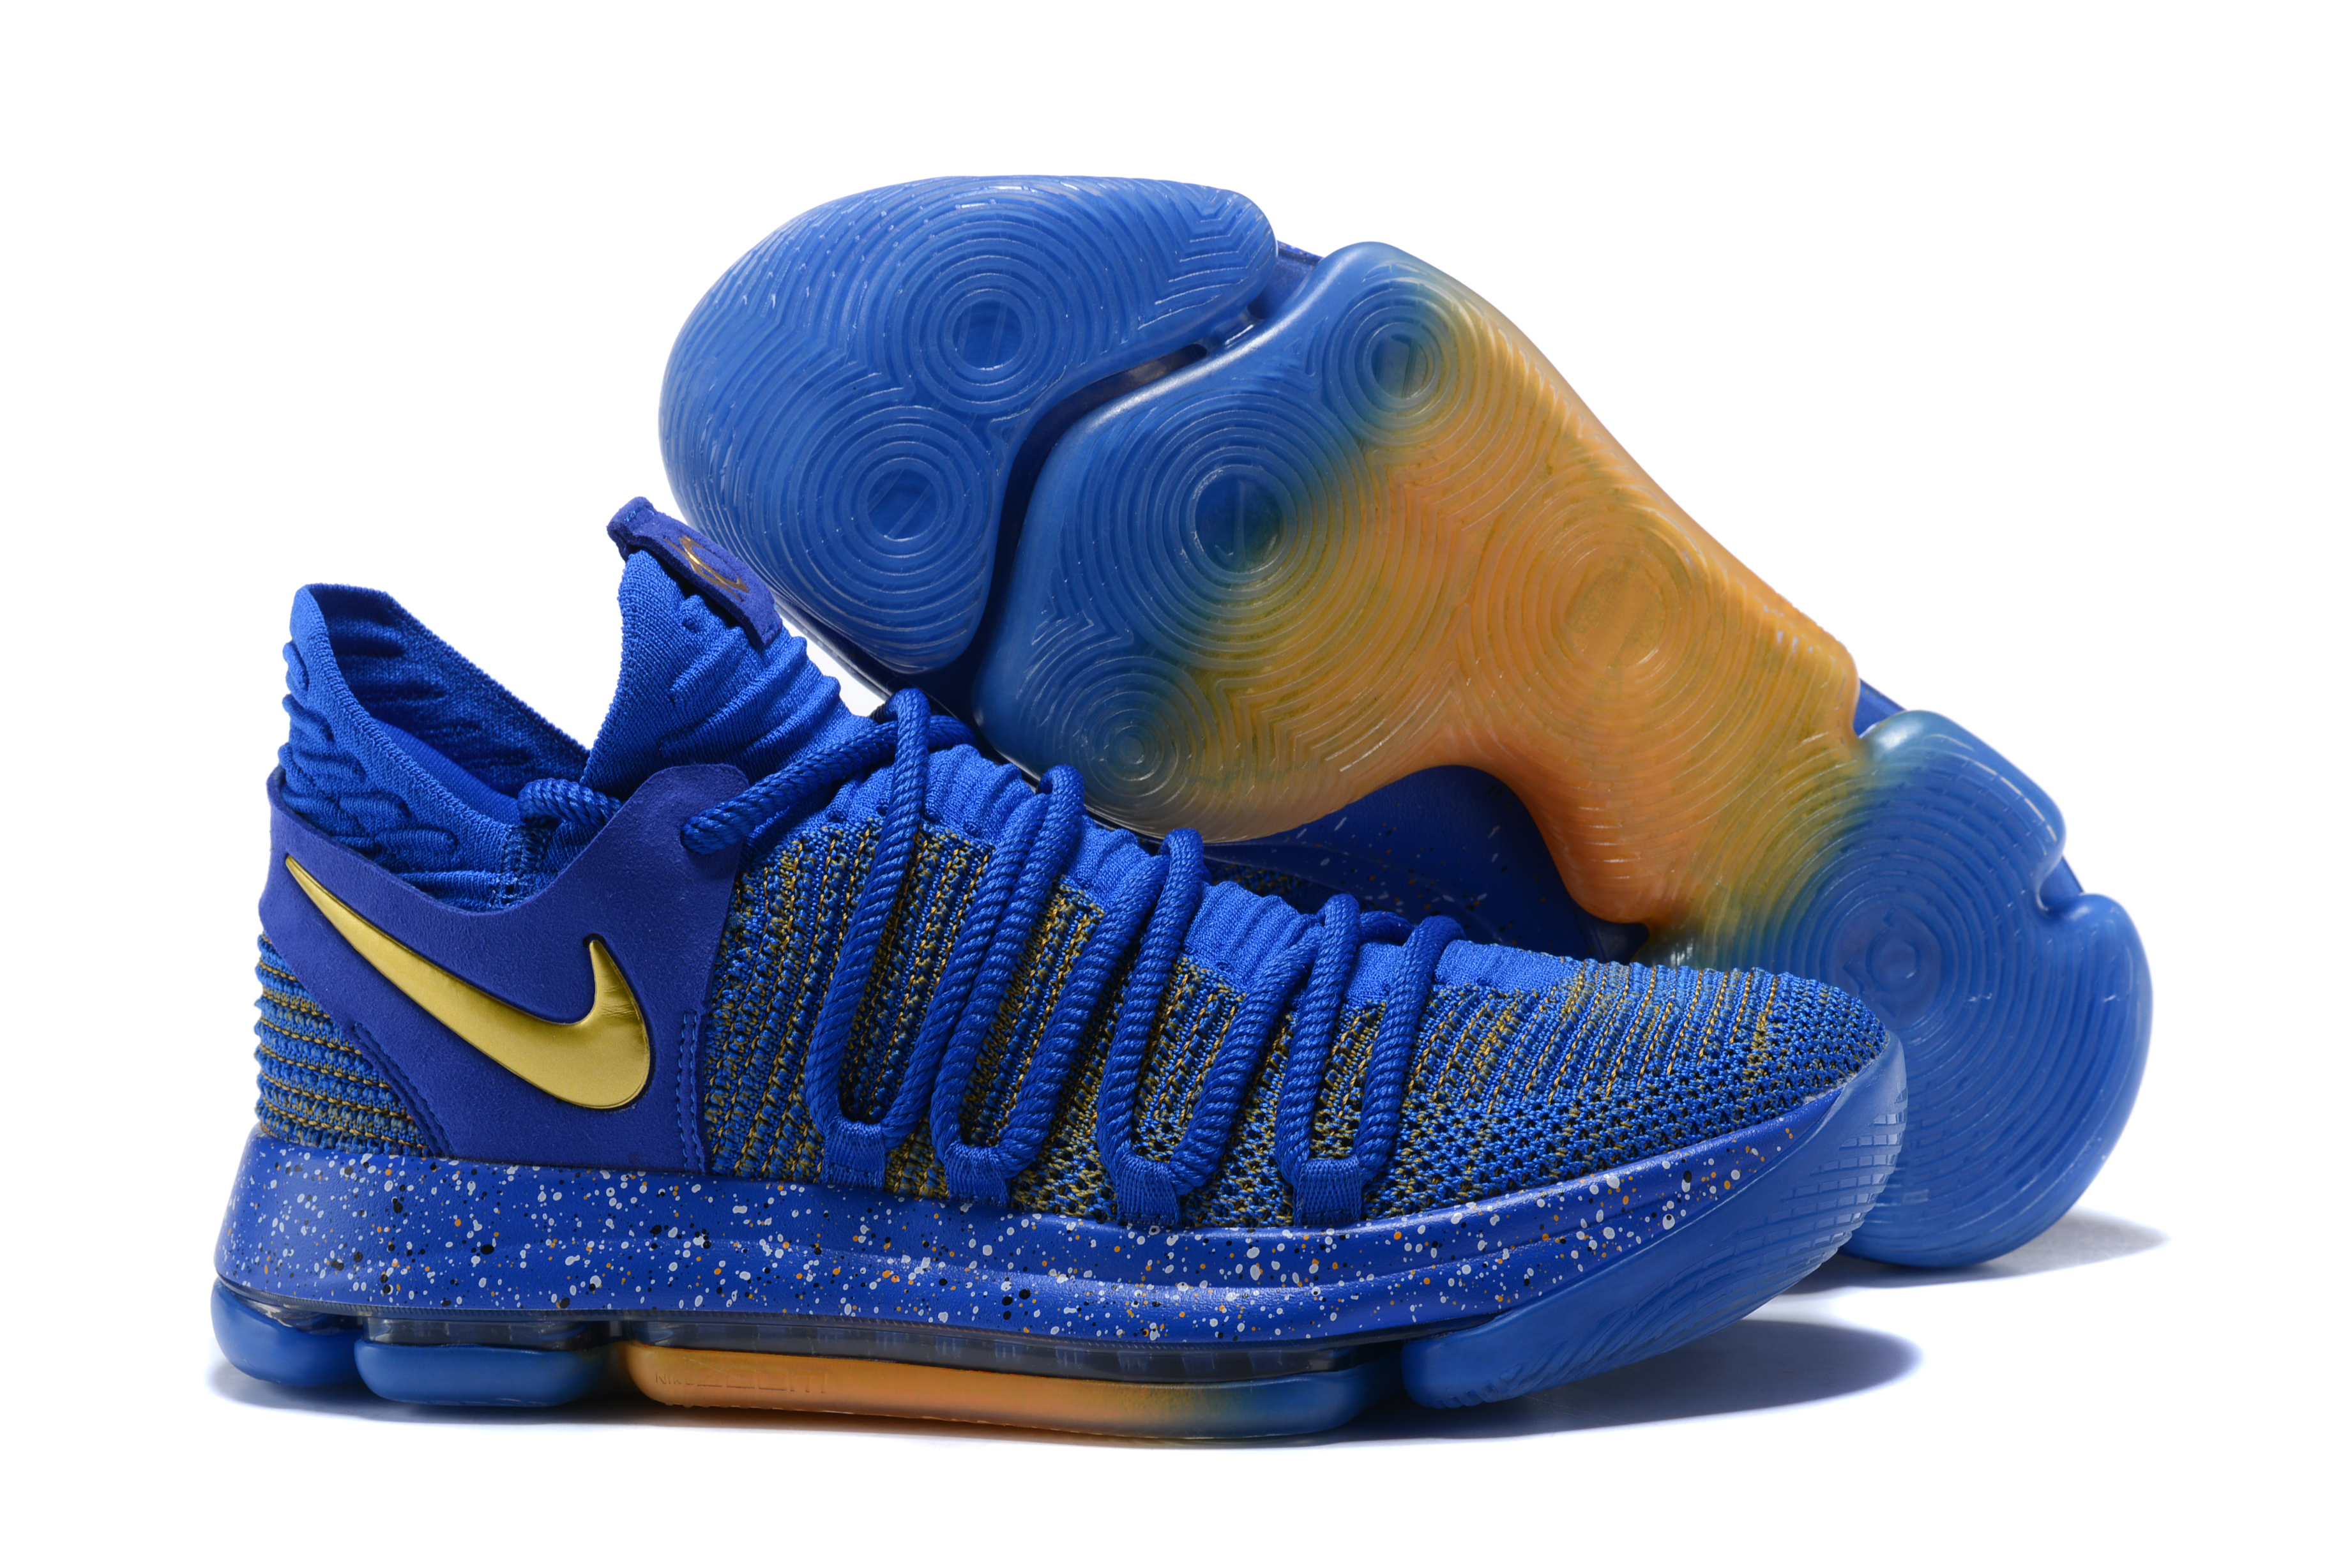 New Nike KD 10 Finals Shoes